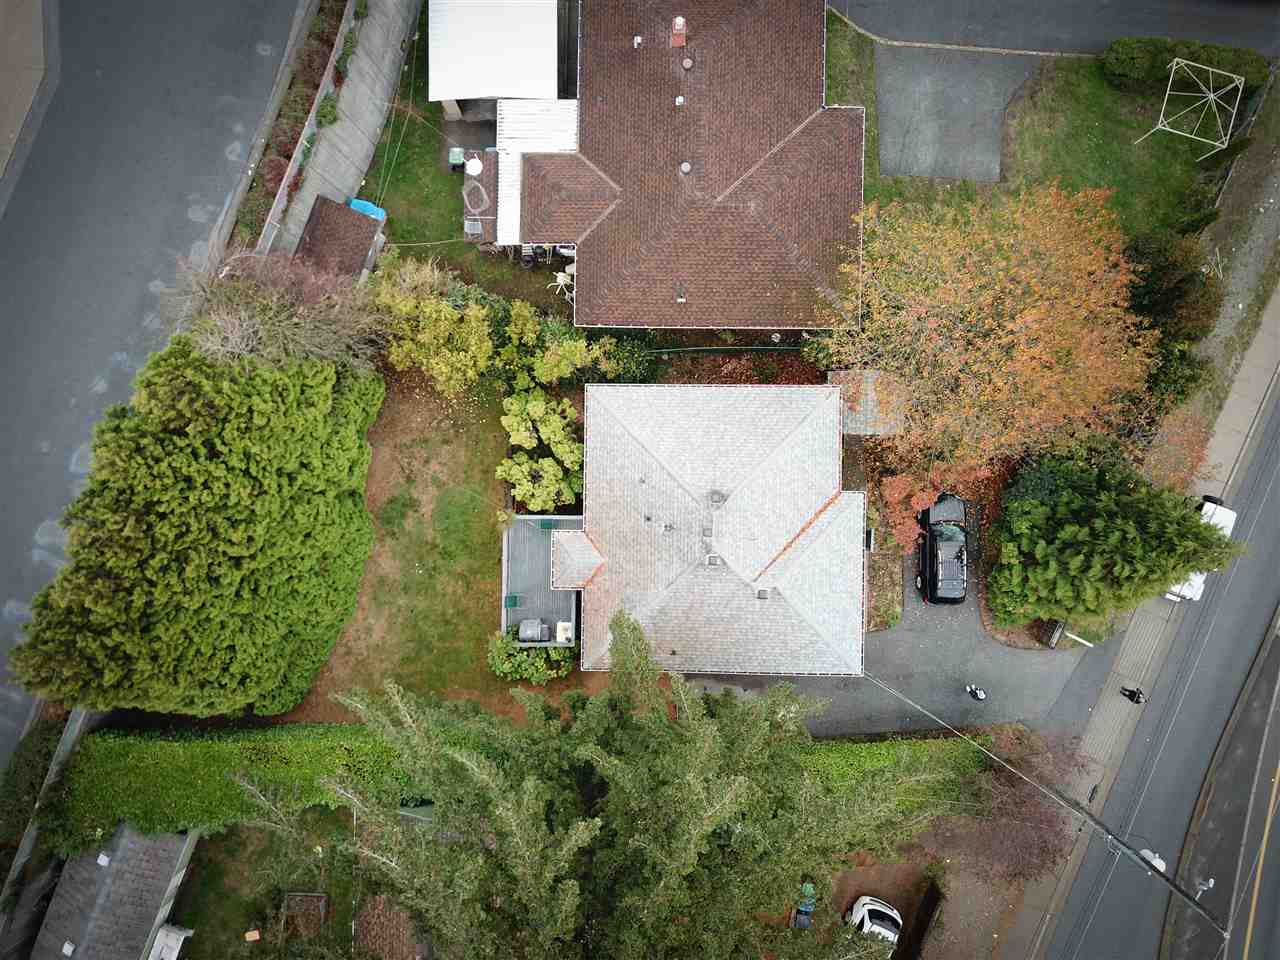 Major Development Opportunity in the 22nd St skytrain station area. Recently adopted (October 2, 2017) on the New Westminster Community Plan as (CD) comprehensive. This 6207 SF lot can be purchased along with several adjoining properties with large development potential. Please call for further information.